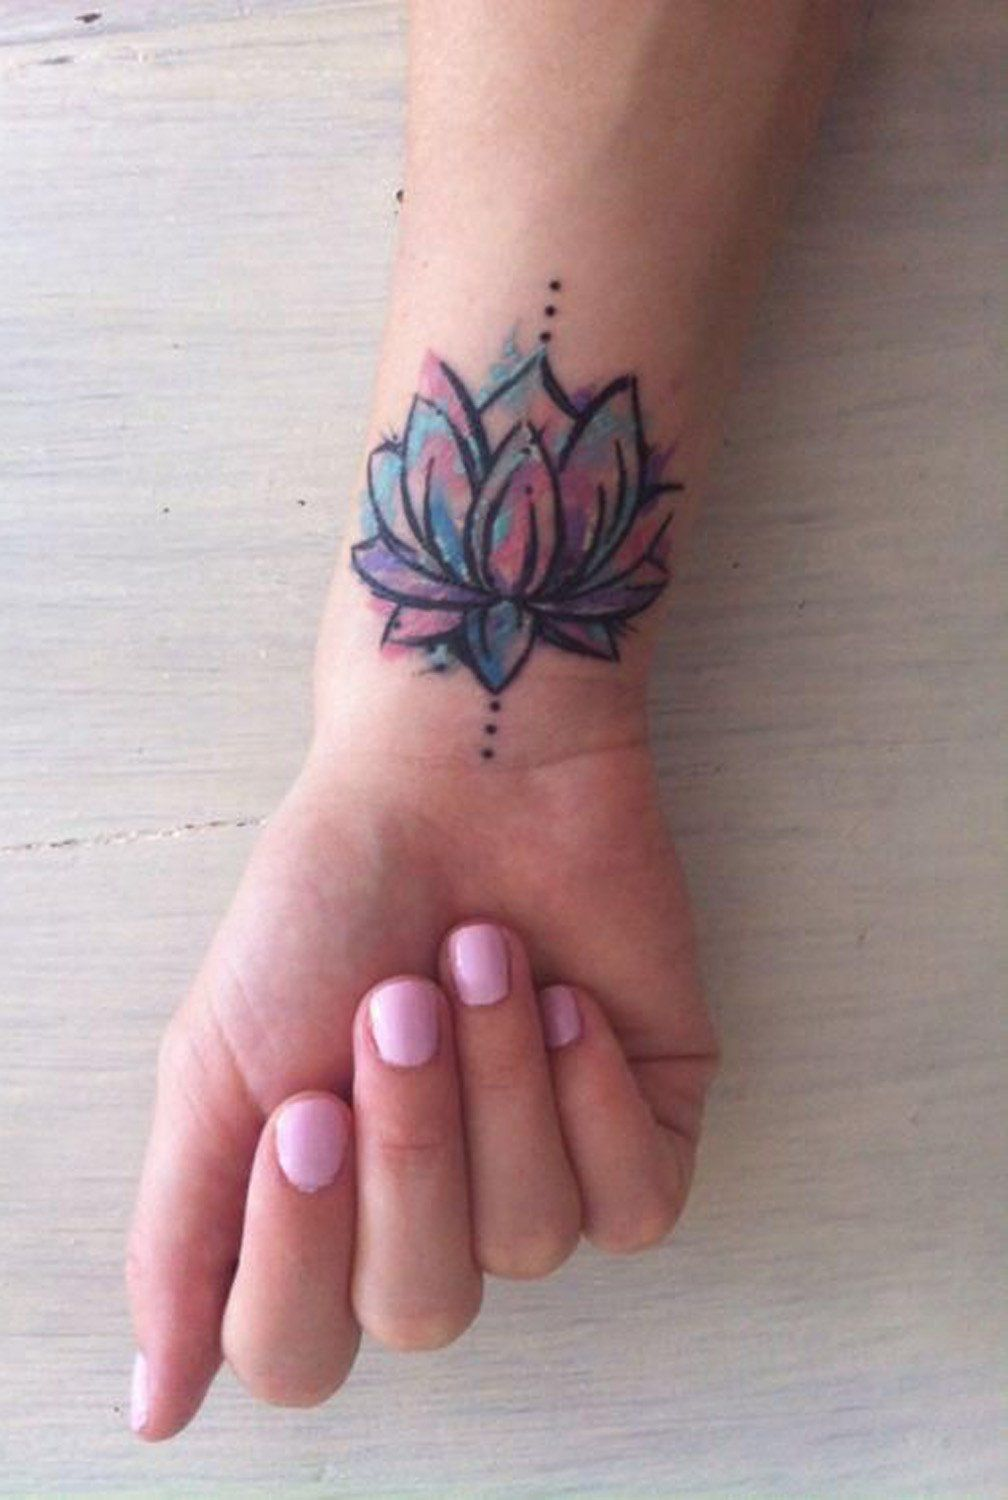 Flower Design On The Wrist Henna Tattoo: Watercolor Lotus Floral Flower Wrist Tattoo Ideas For